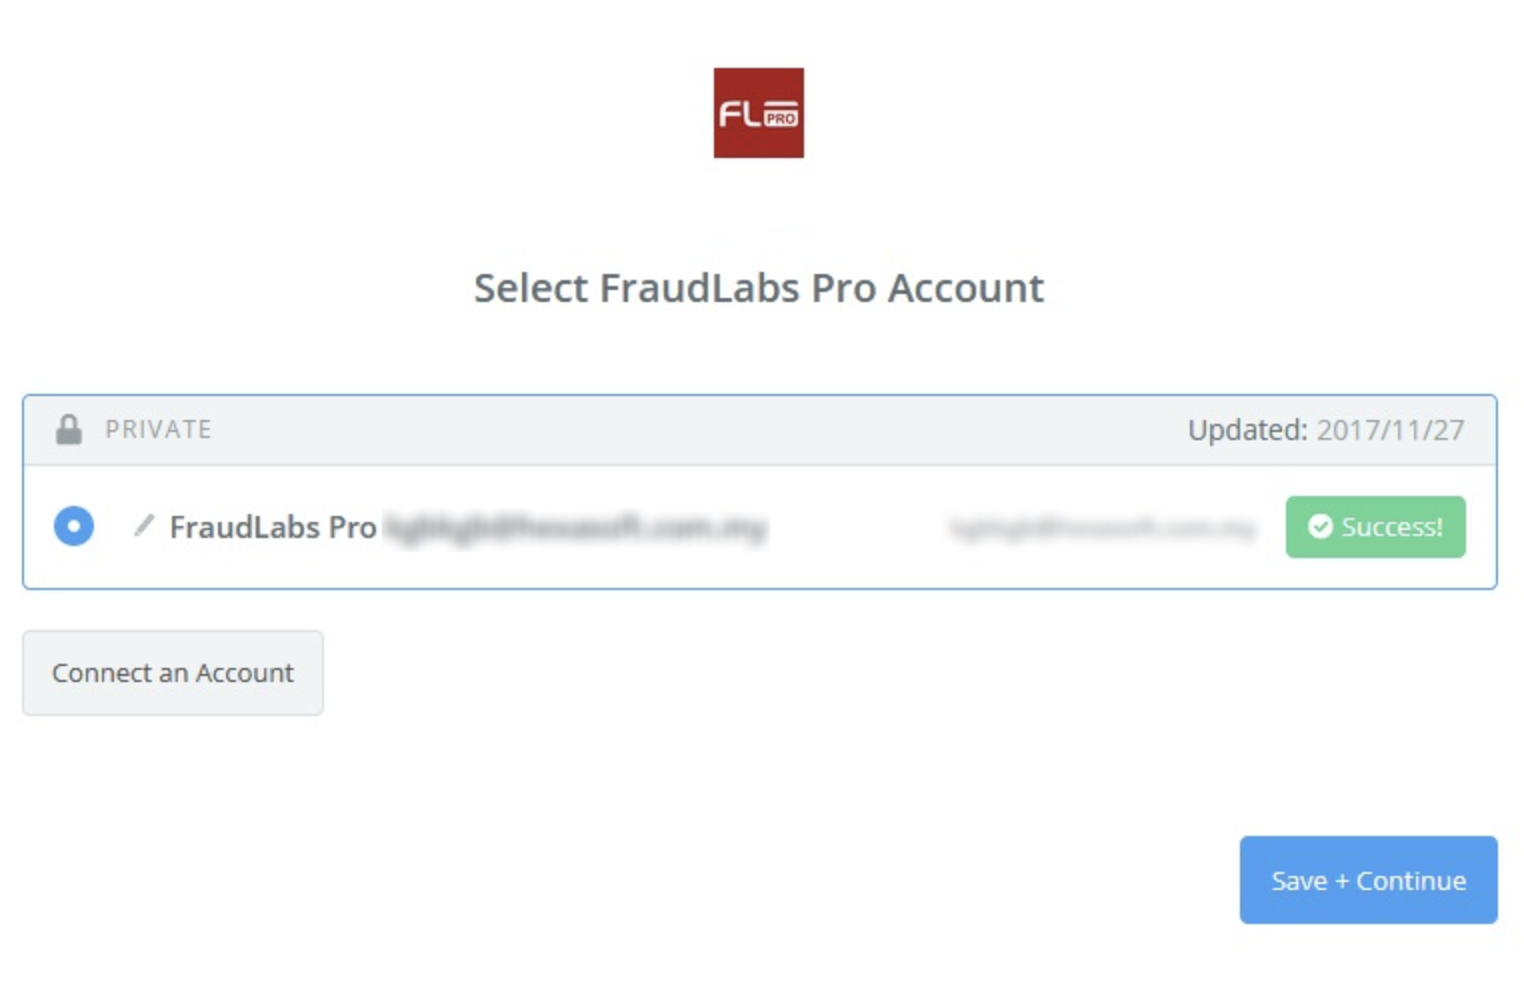 FraudLabs Pro connection successful